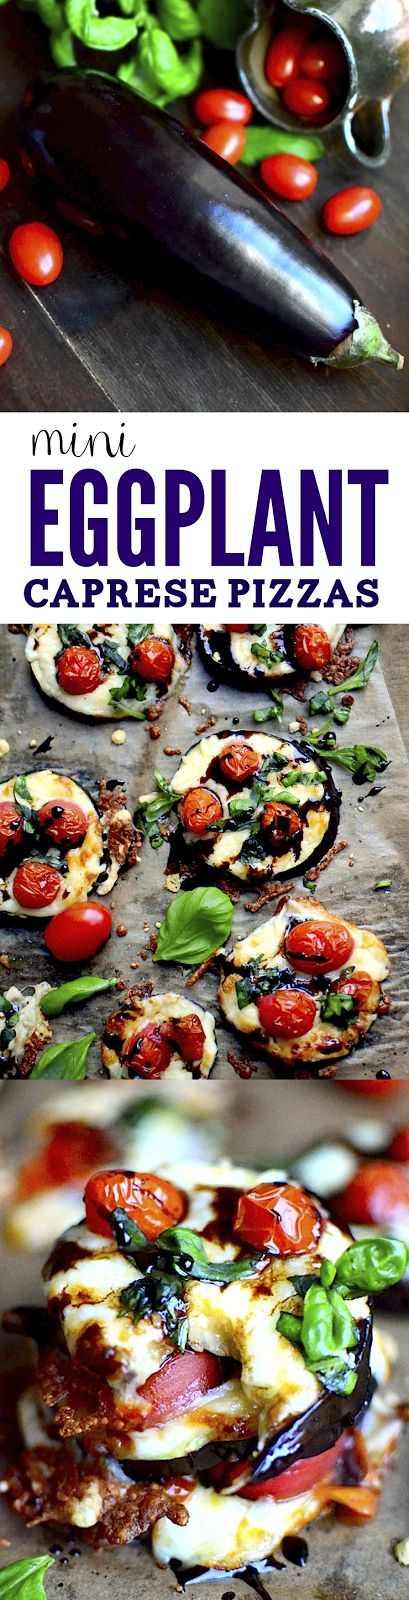 These little eggplant pizzas are perfect for lowcarb, gluten free, or otherwise healthy eaters. They're loaded with mozzarella, fresh basil, bursty tomatoes, and a delicious balsmaic reduction!